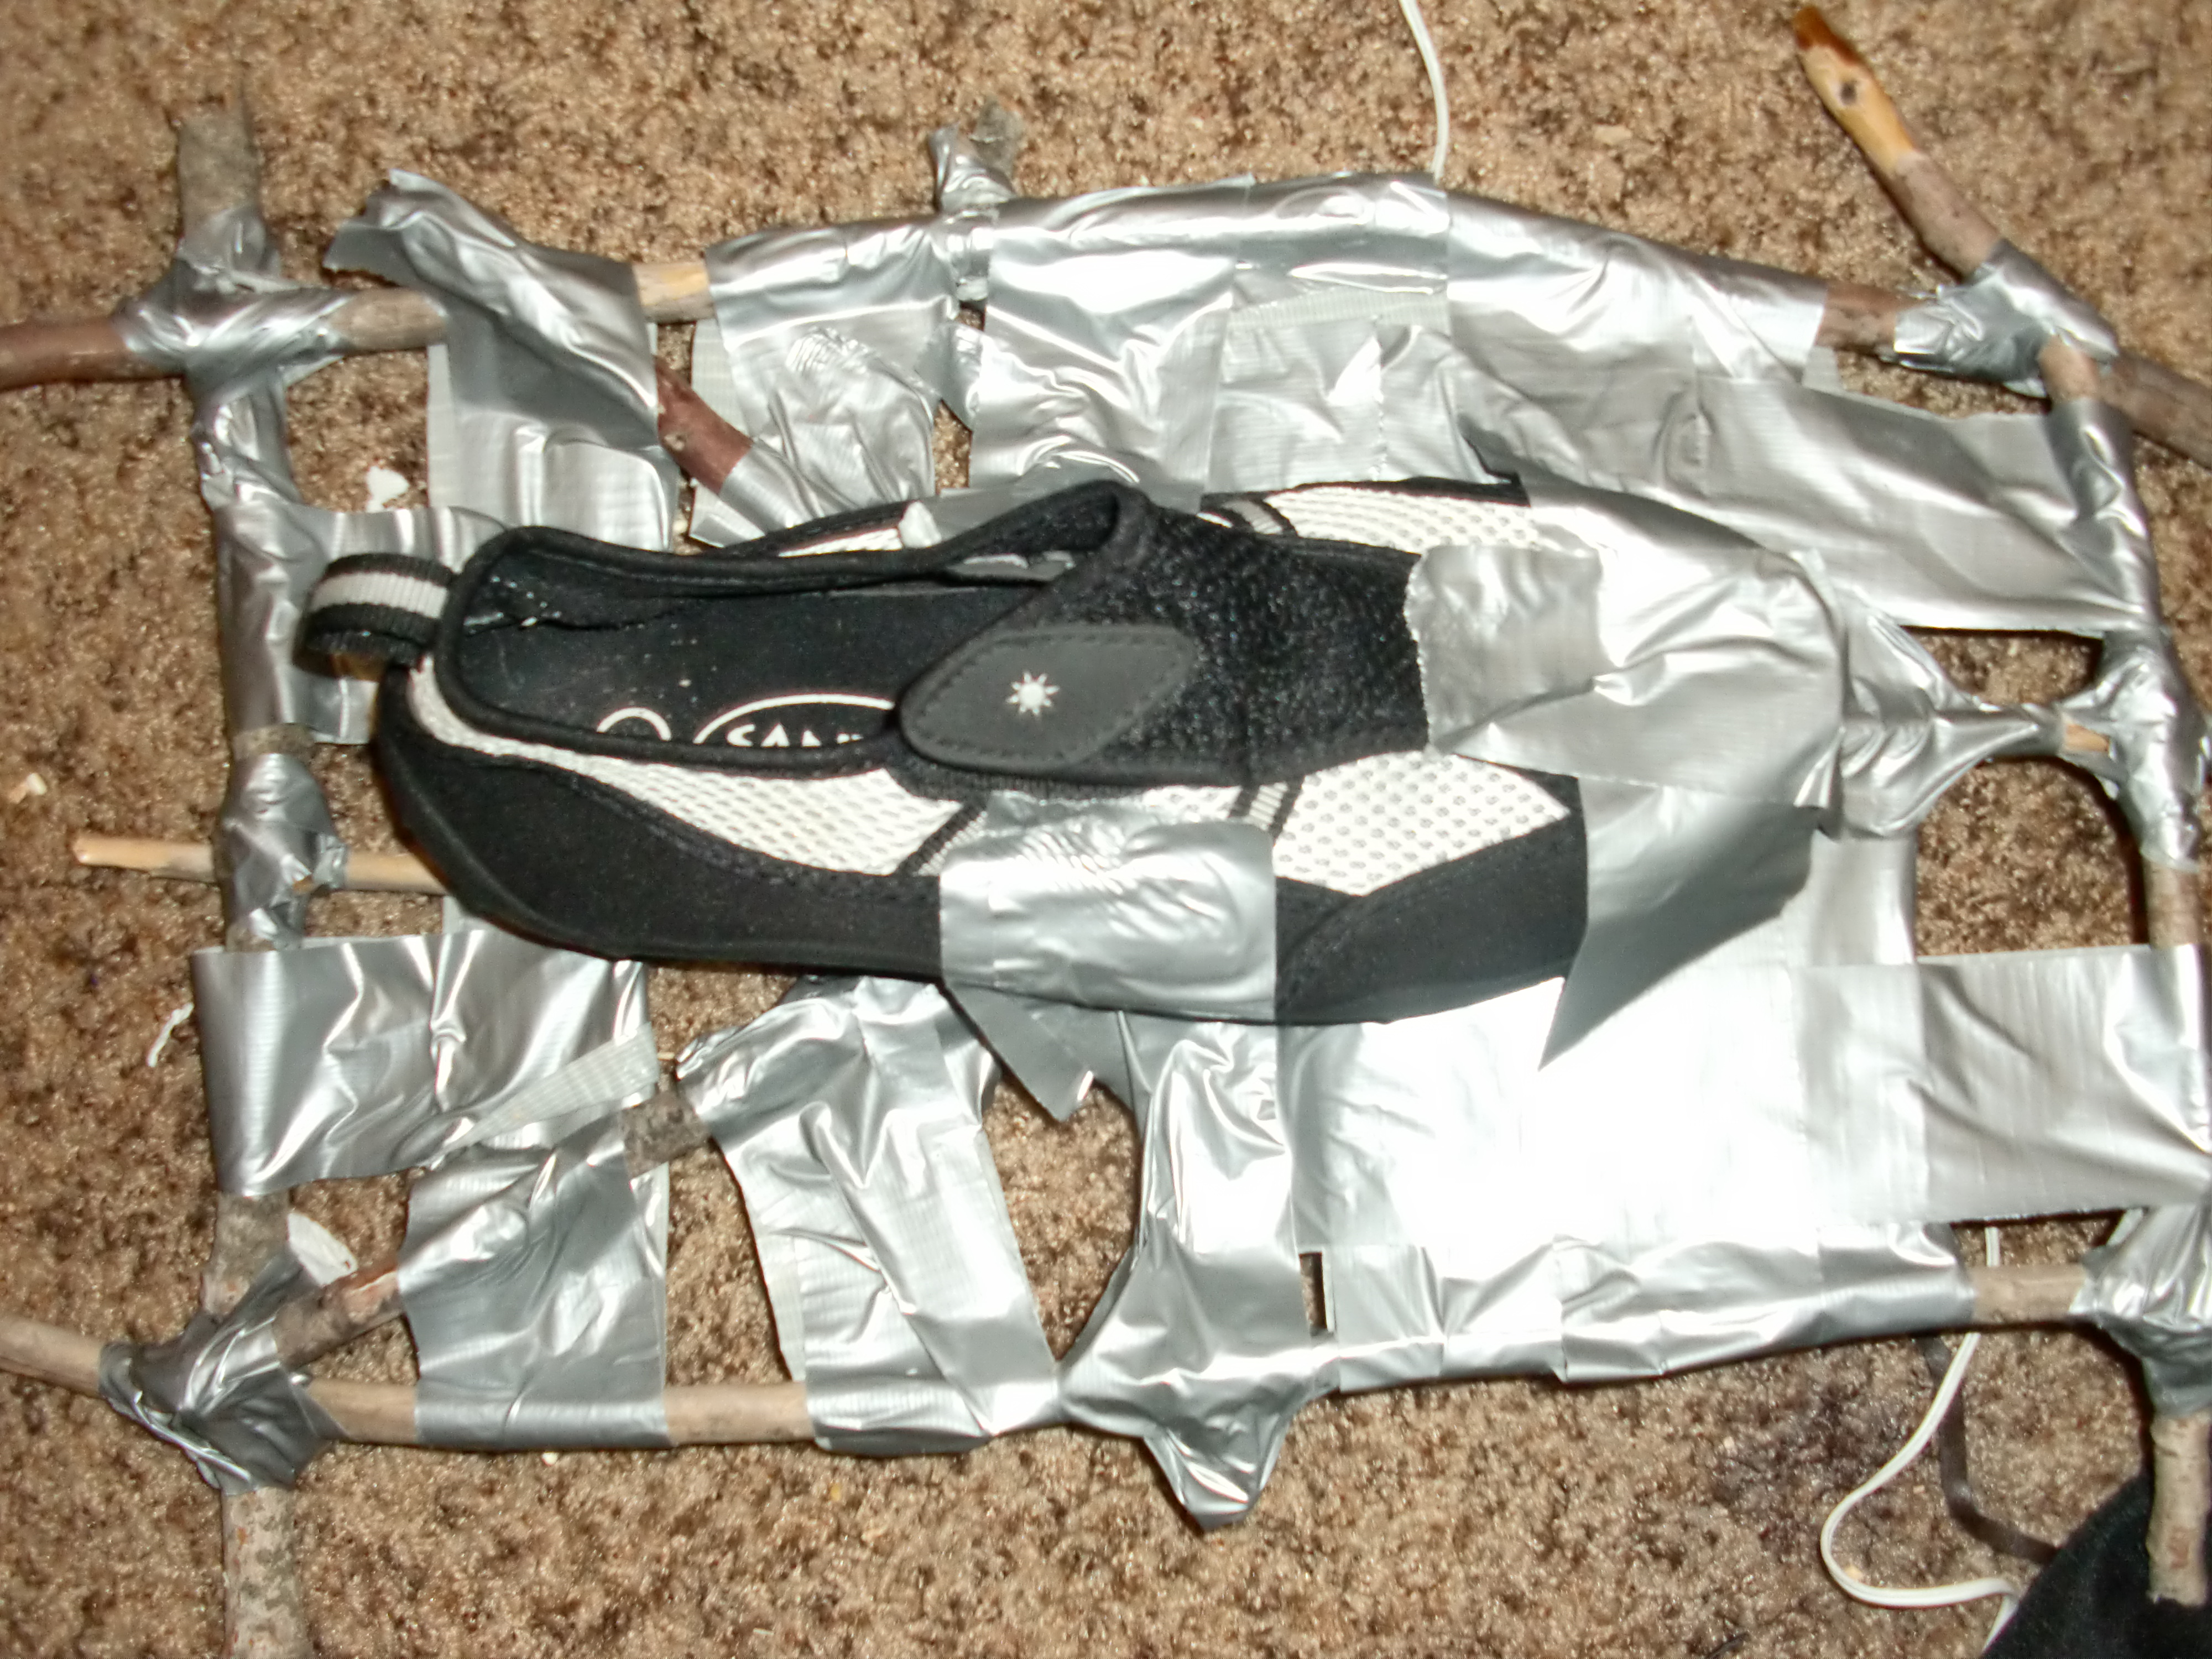 Duct Tape Snow Shoes